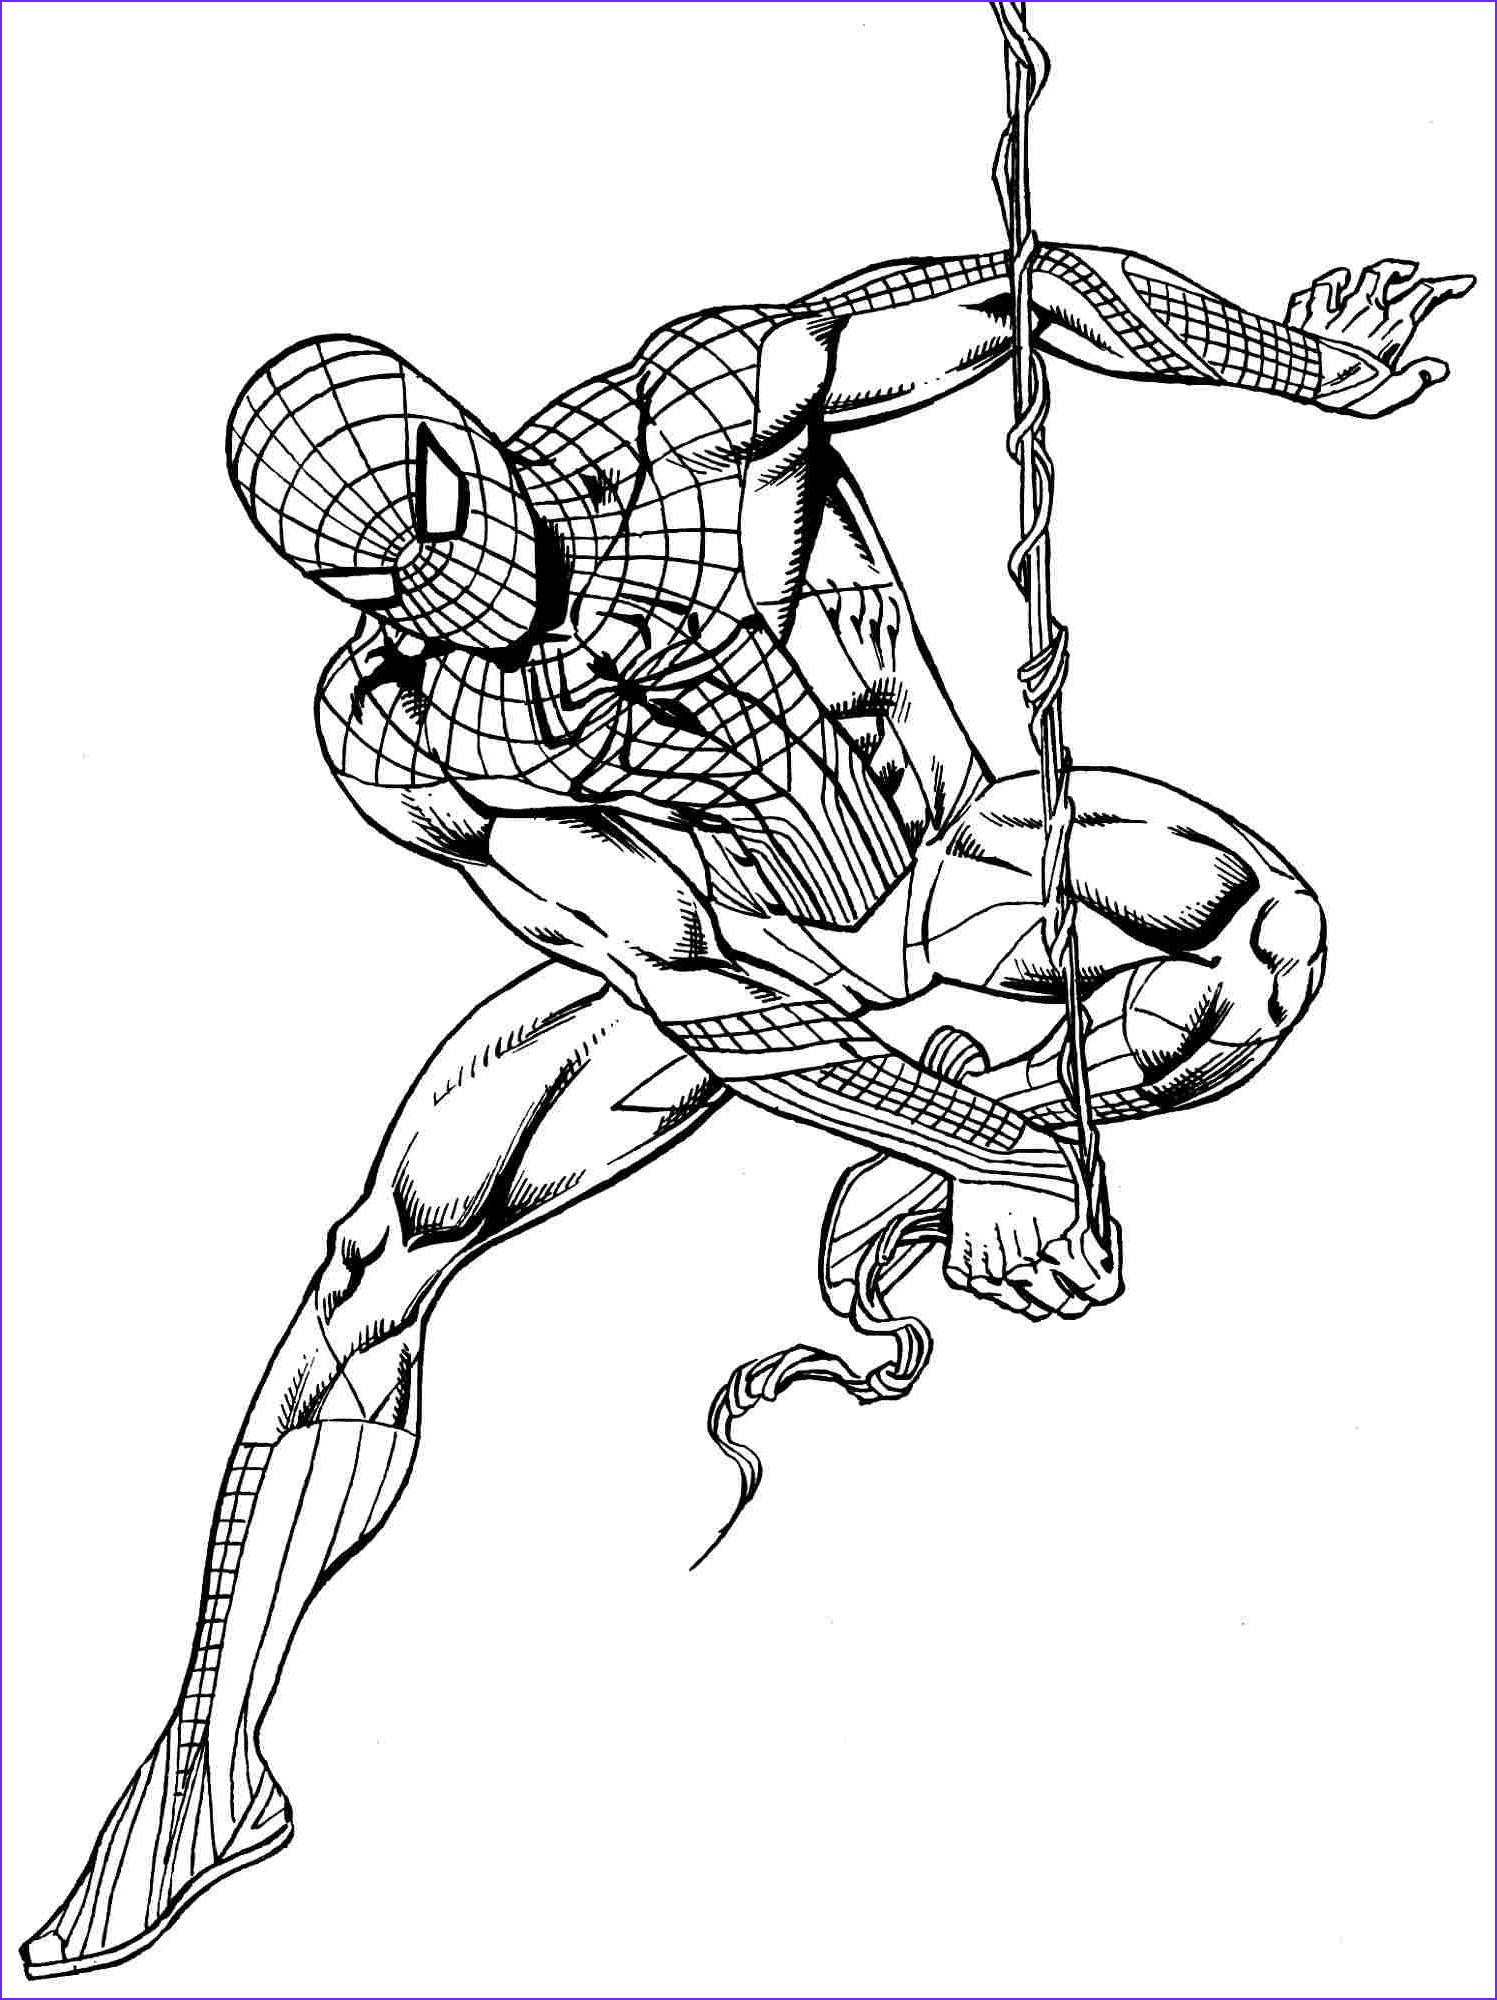 Coloring Superheroes Beautiful Image Download or Print the Free Spiderman Rope Coloring Page